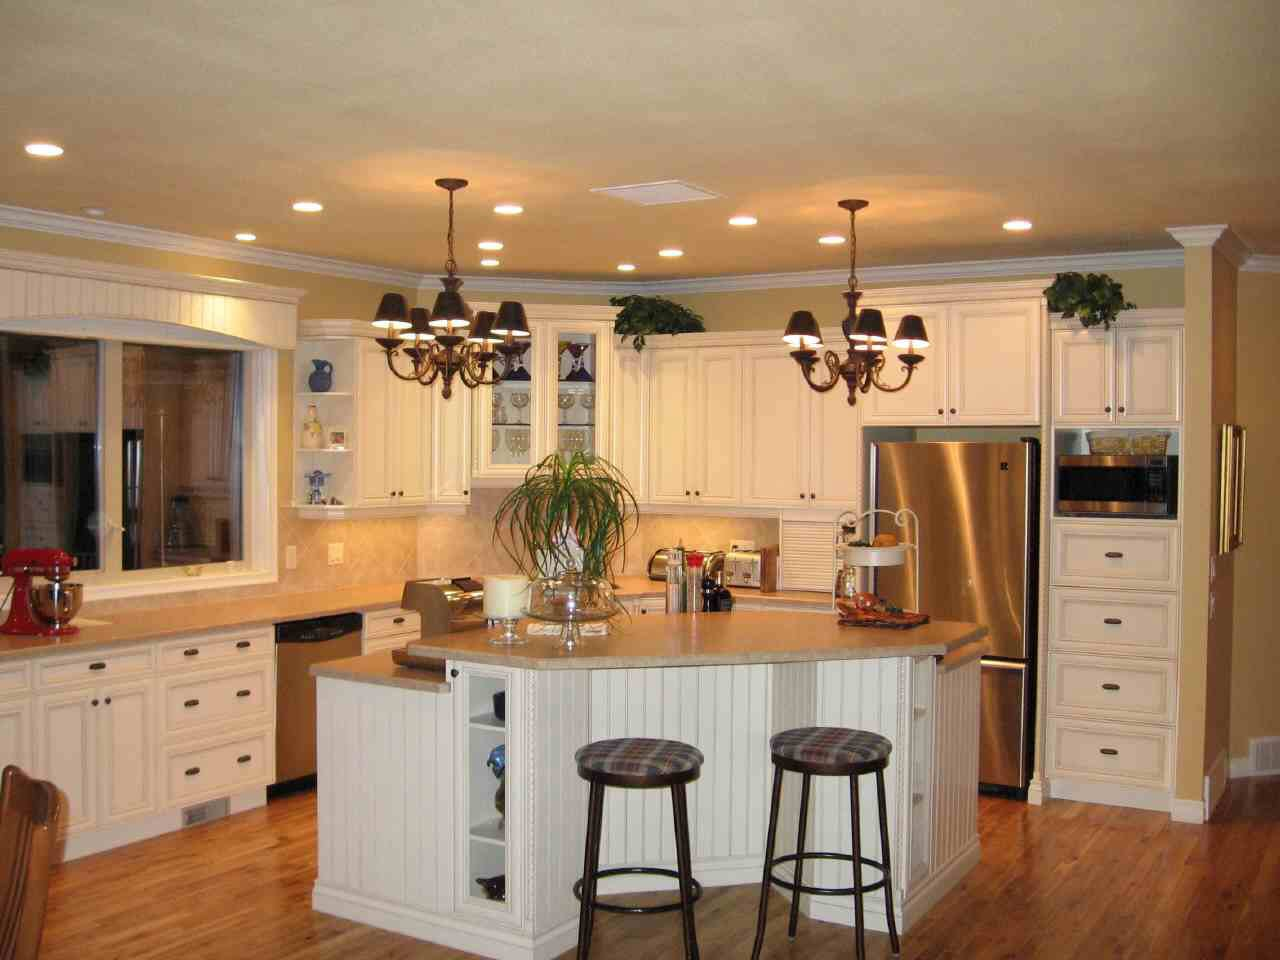 Outstanding Kitchen Island Design Ideas for Small Kitchens 1280 x 960 · 109 kB · jpeg